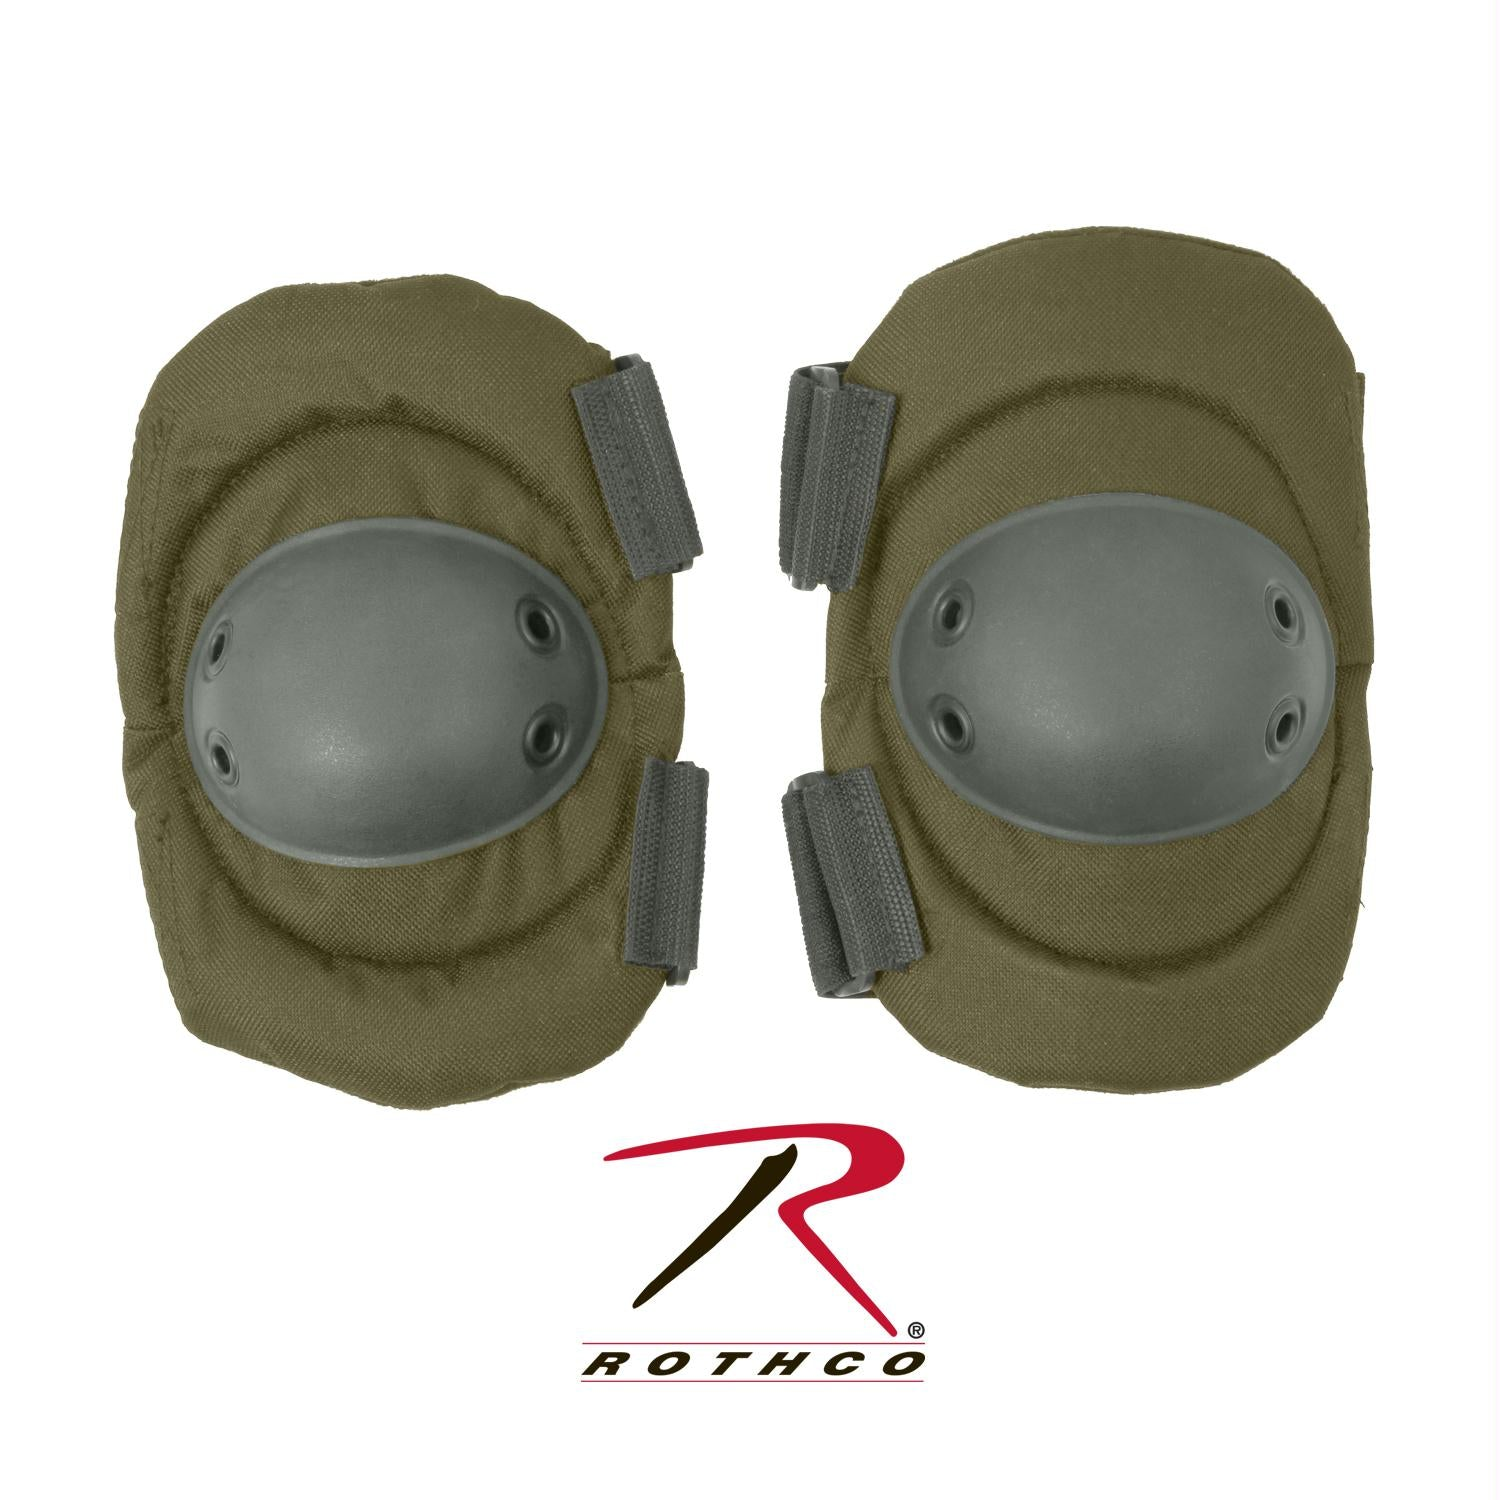 Rothco Multi-purpose SWAT Elbow Pads - Olive Drab